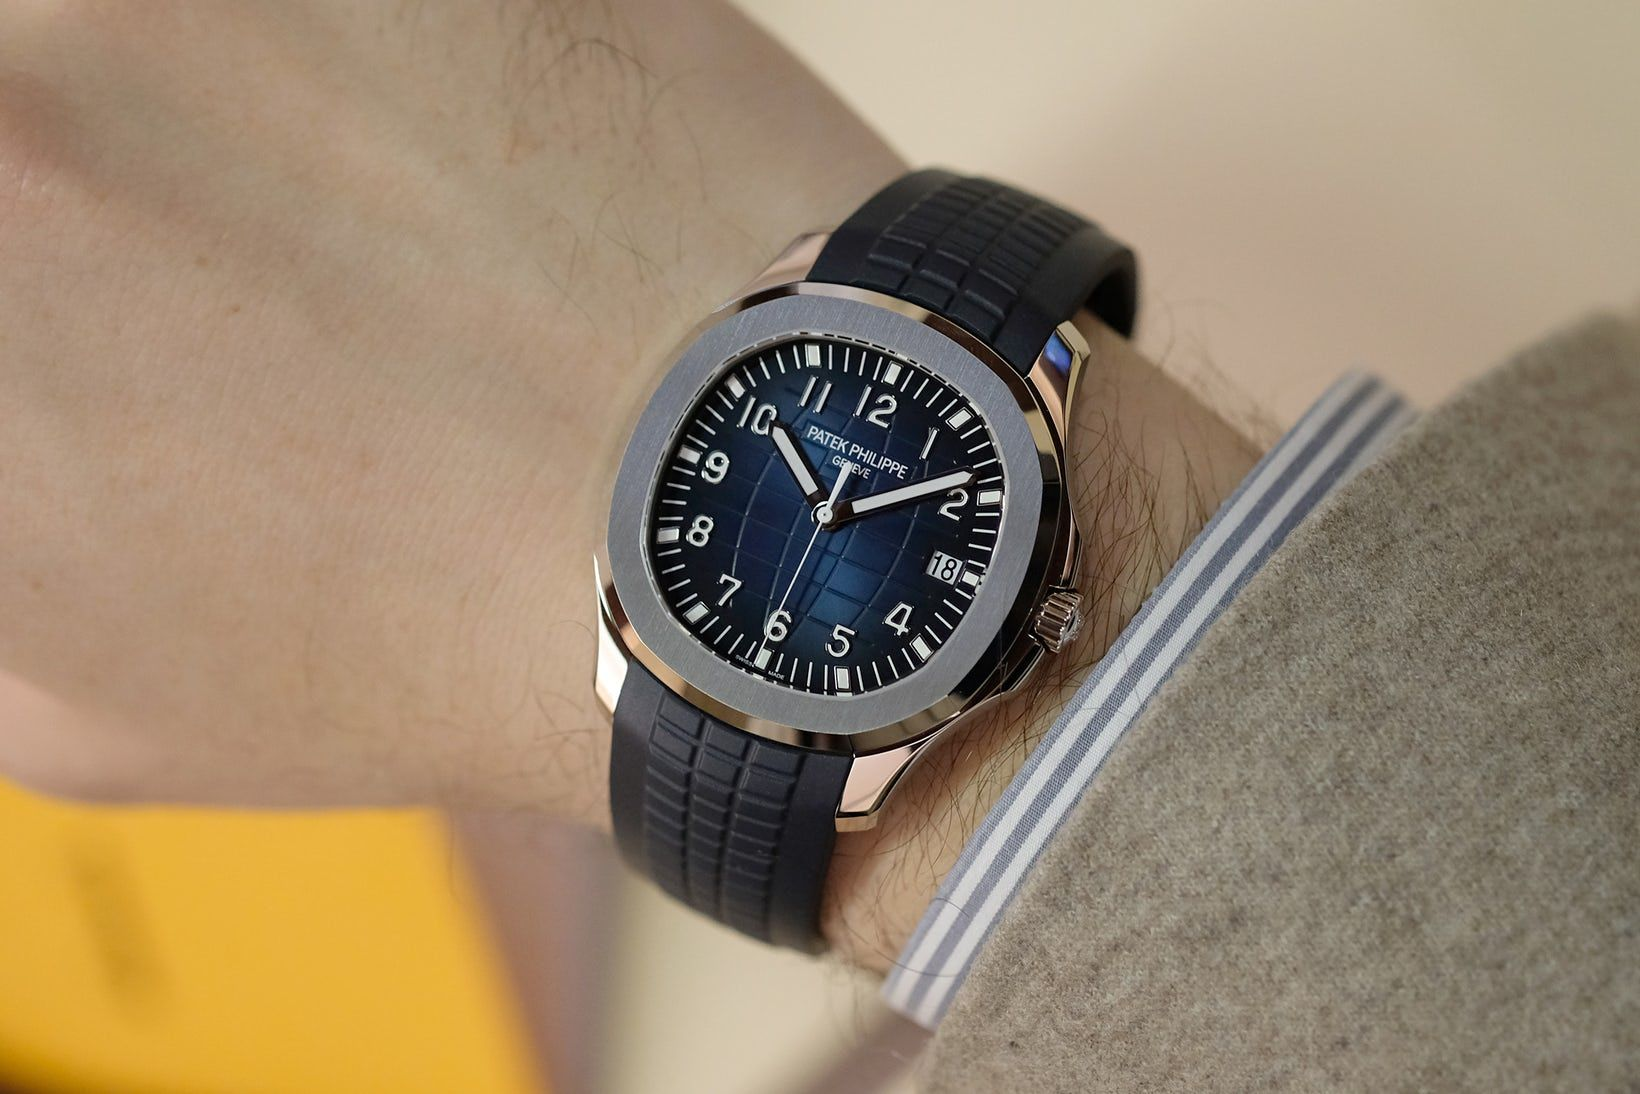 Introducing The Patek Philippe Ref 5168g 20th Anniversary Aquanaut